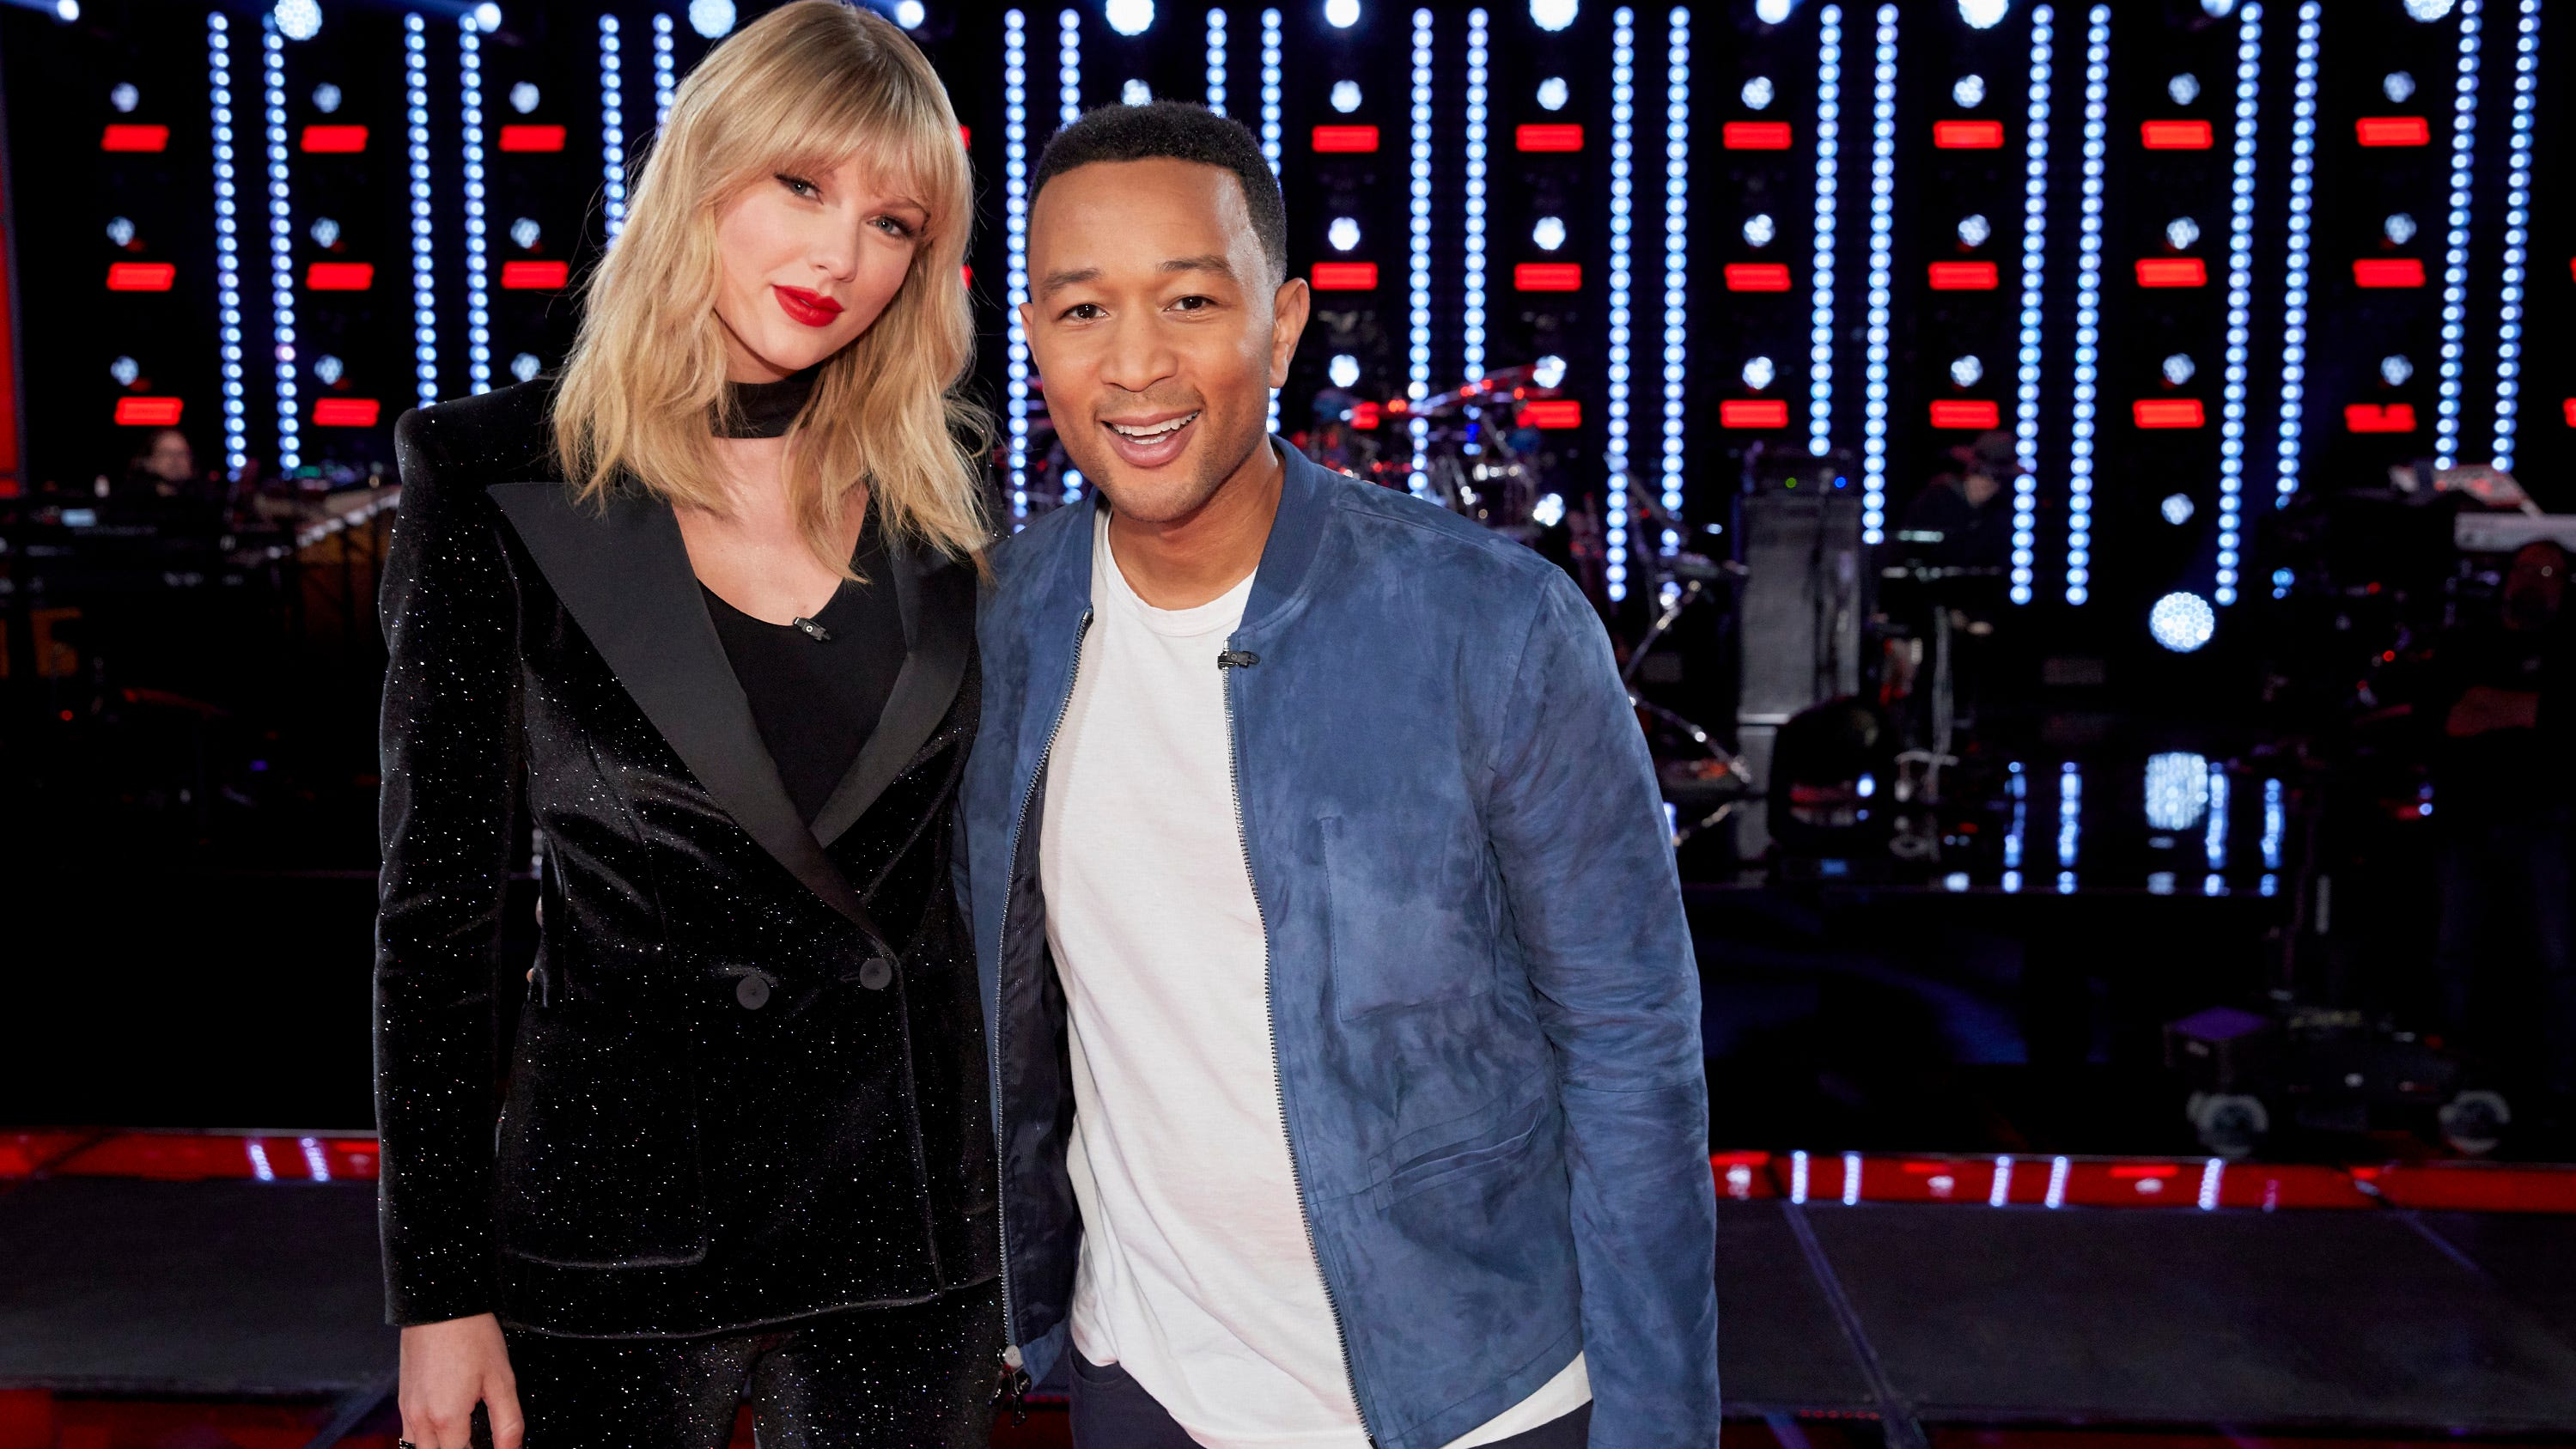 The Voice Taylor Swift As Mega Mentor Steals The Show